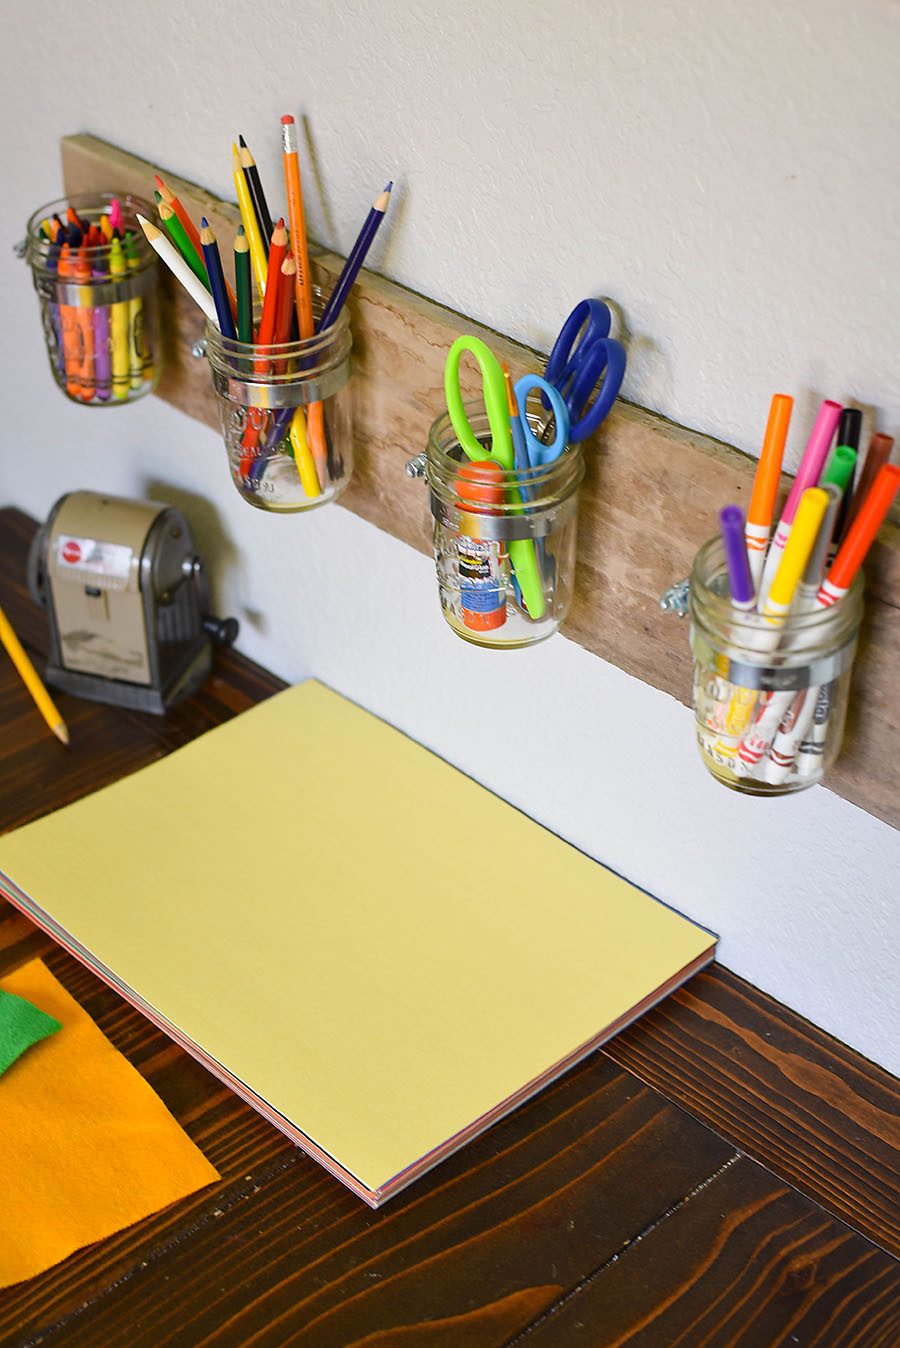 Best ideas about DIY Art Supply Organizer . Save or Pin DIY Mason Jar Art Supply Organizer for Kids Our Now.